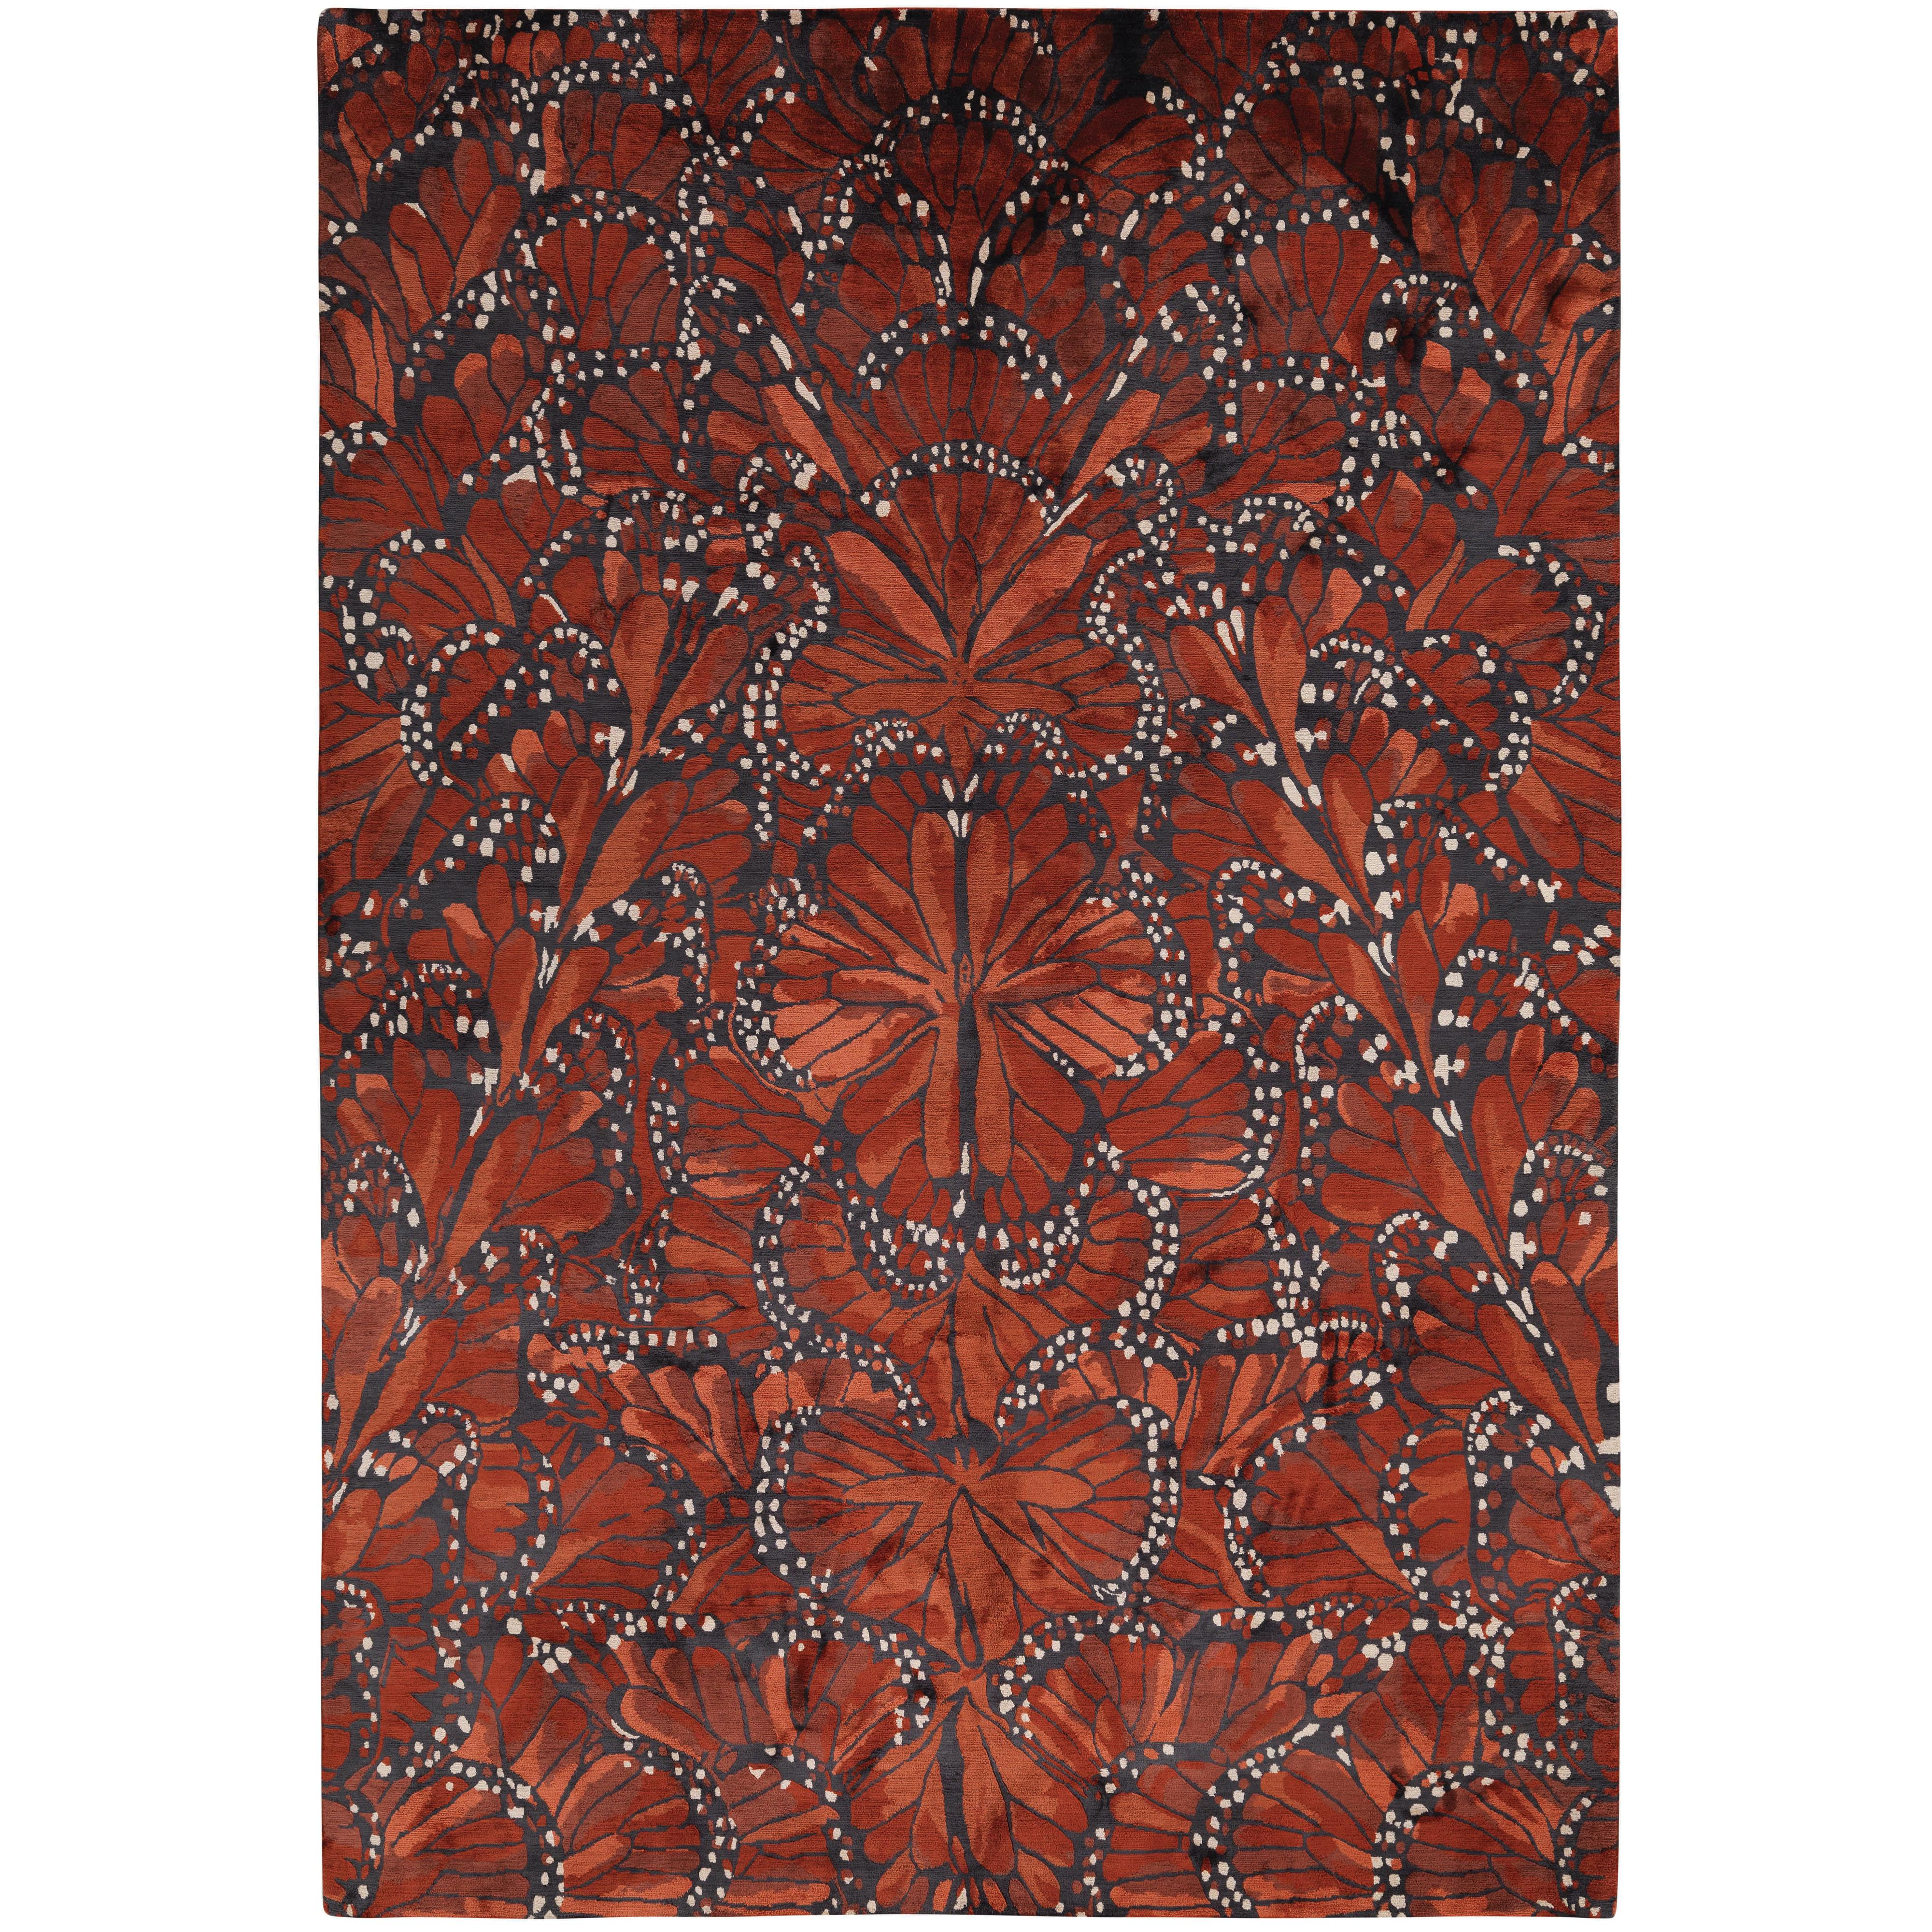 Monarch Fire Hand-Knotted 10x8 Rug in Silk by Alexander McQueen